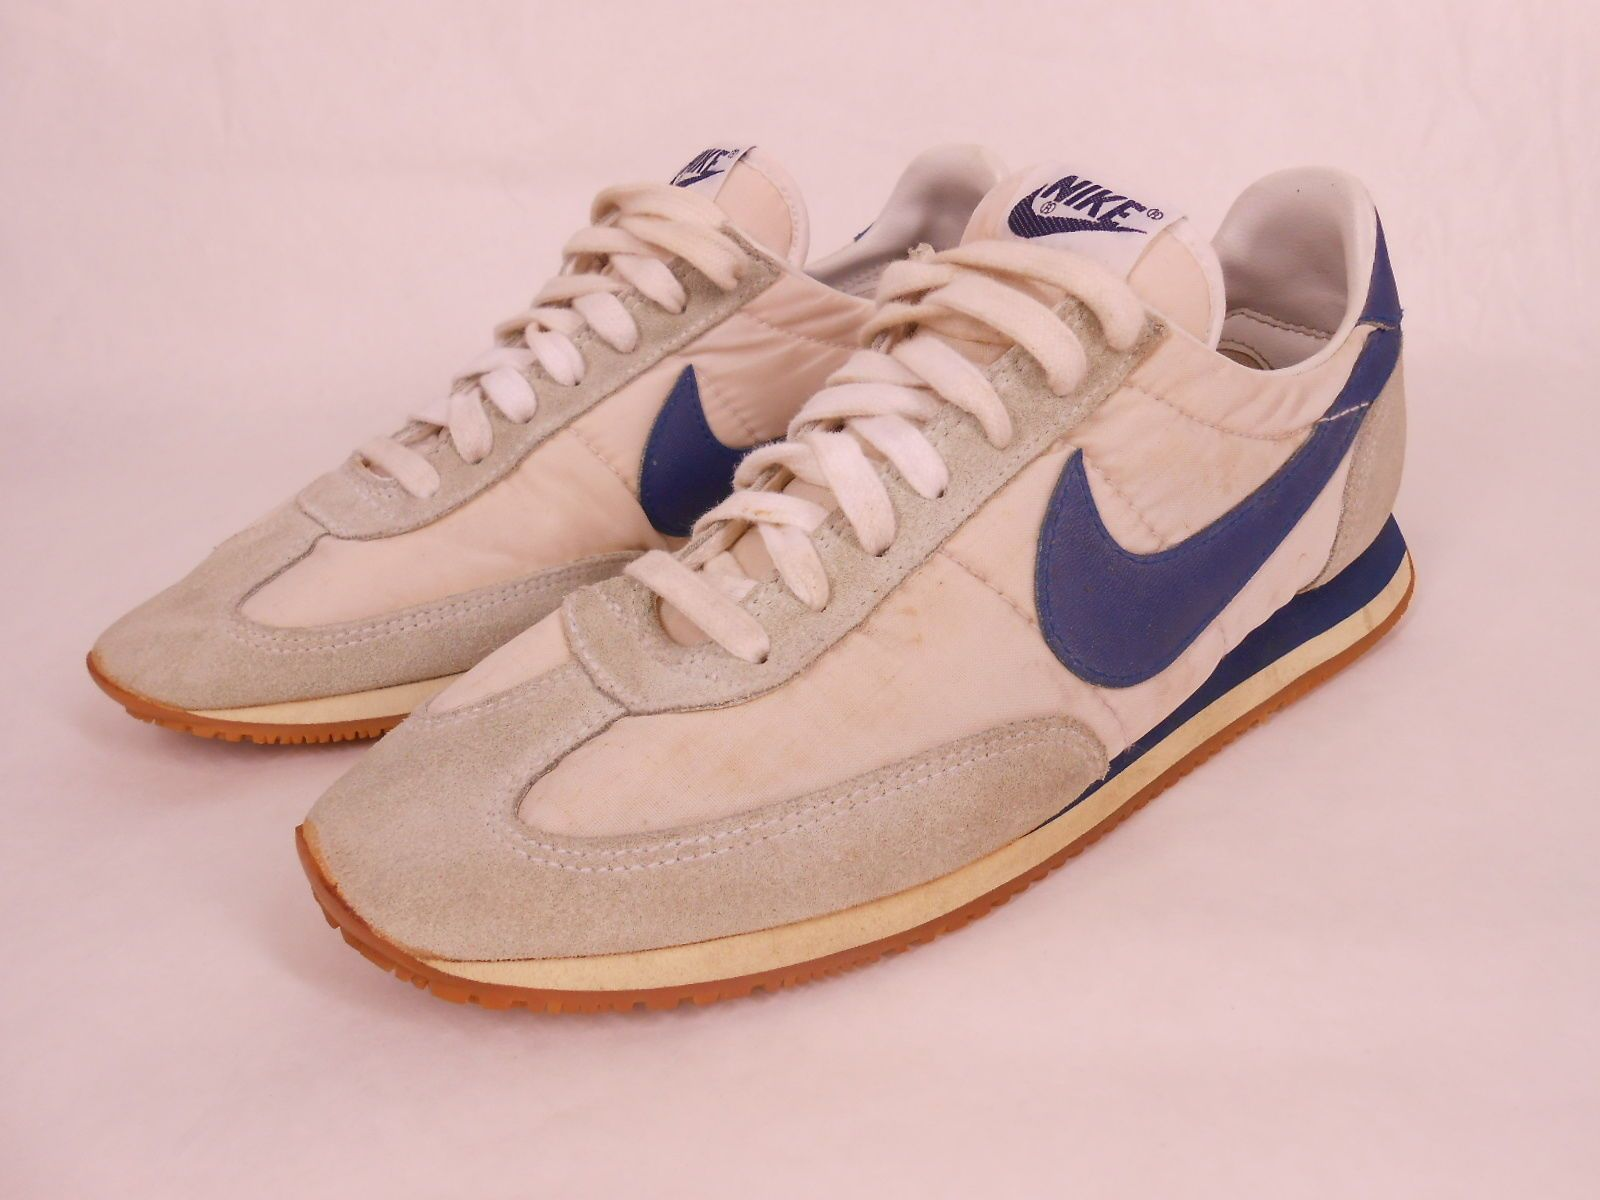 1983 deadstock men's nike cortez running shoessize- 10color- off white,  light gray bluecondition